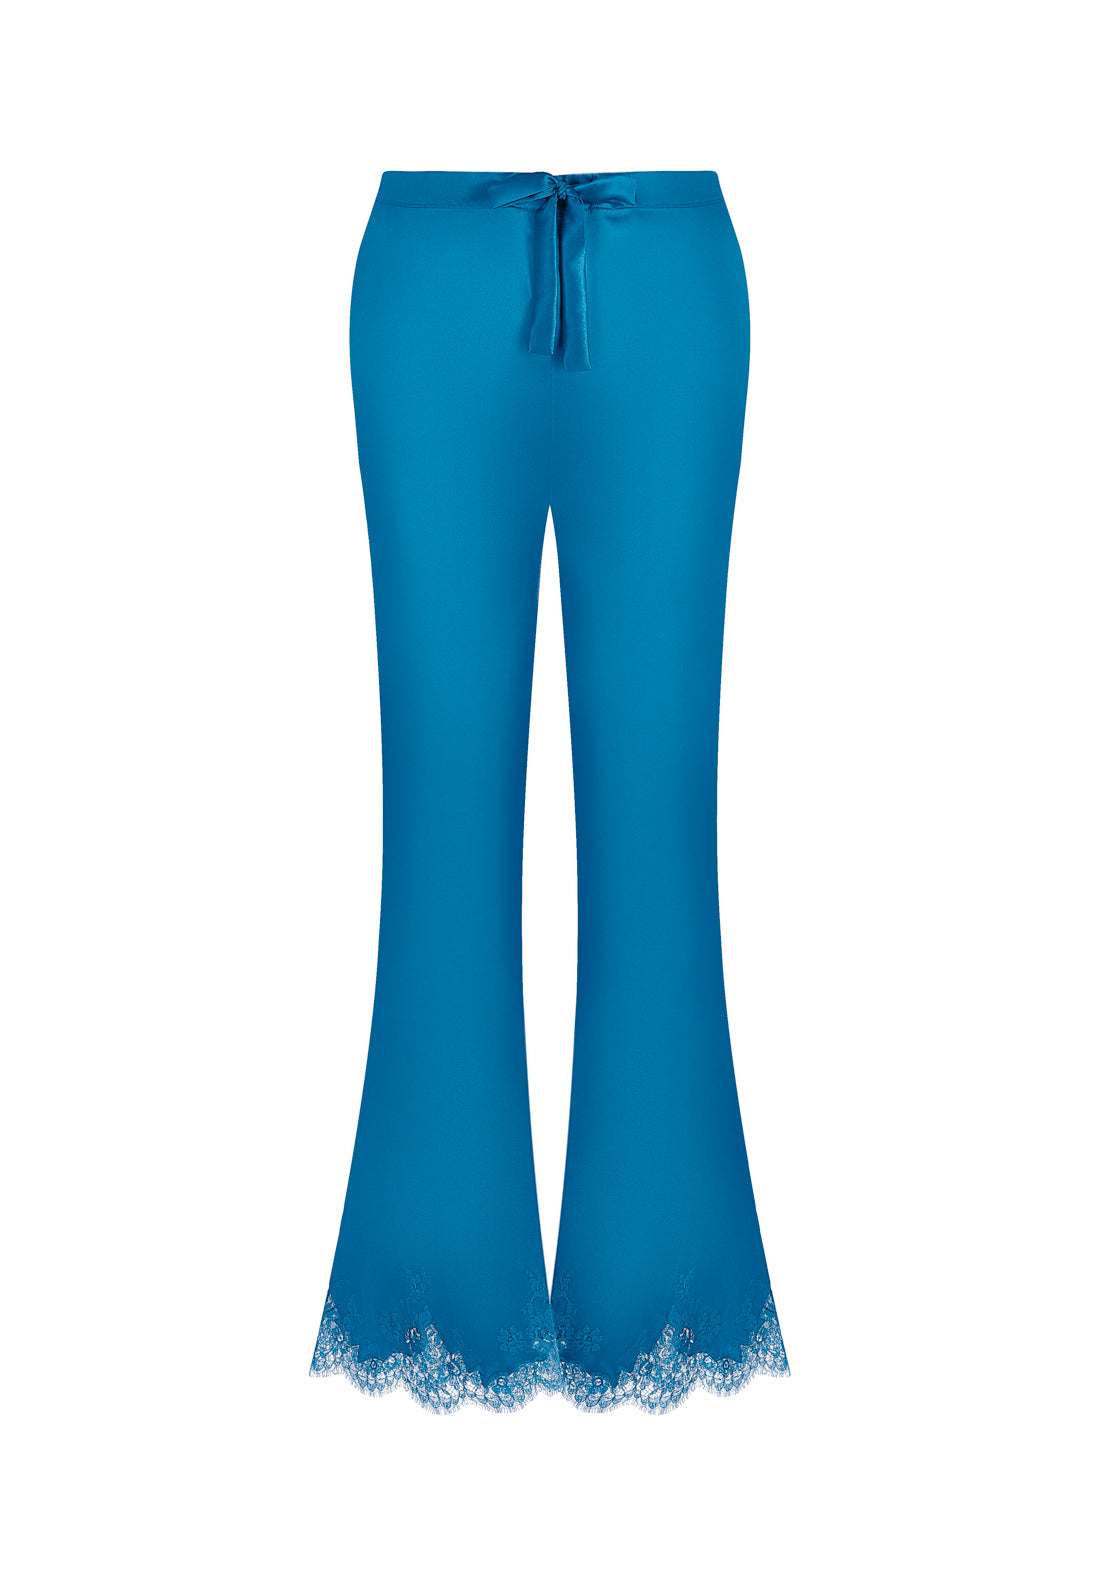 East of Eden Long Pants in Indian Blue